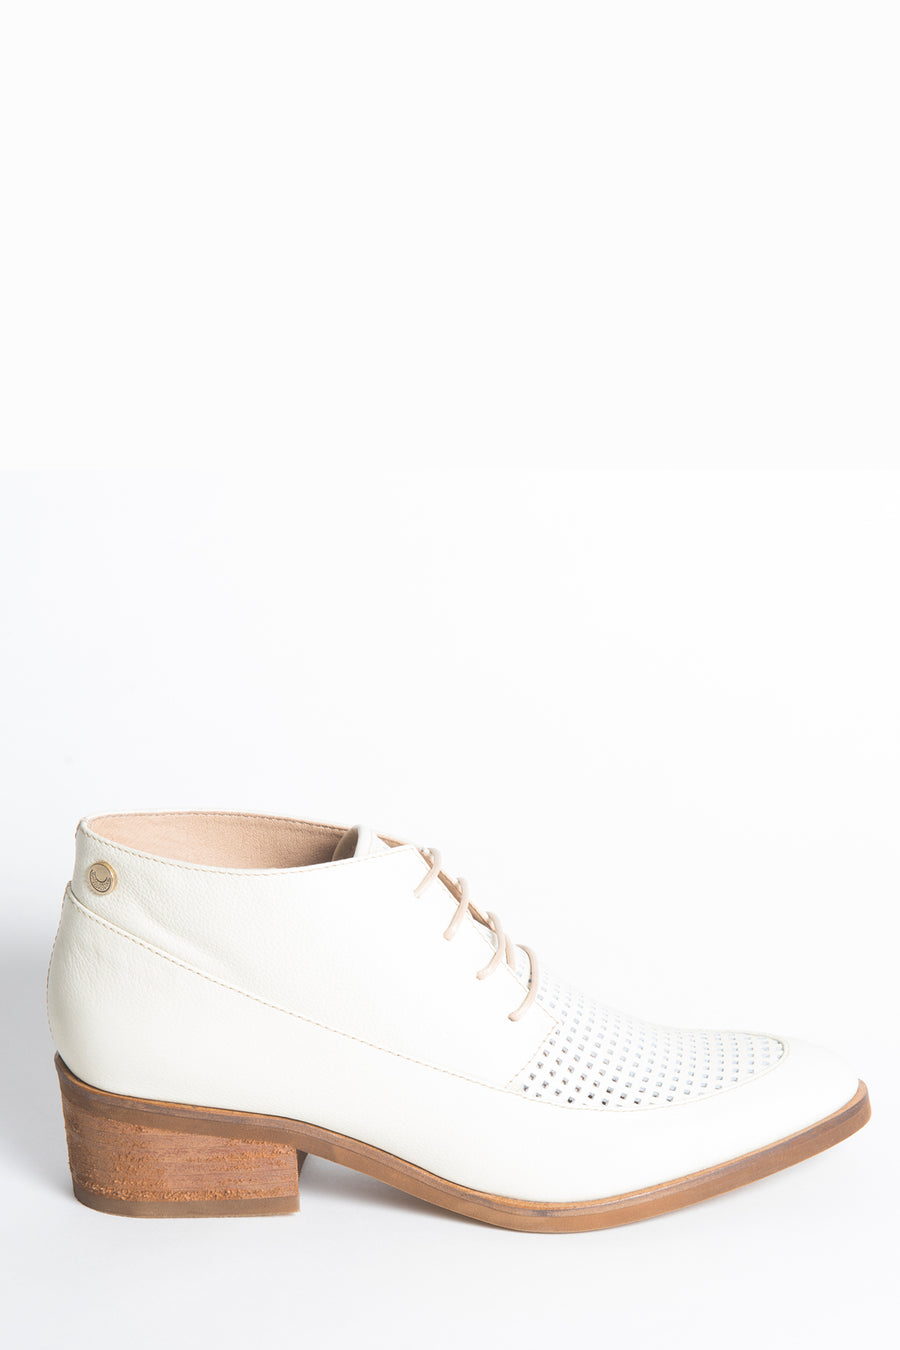 Berlin booties in ivory leather